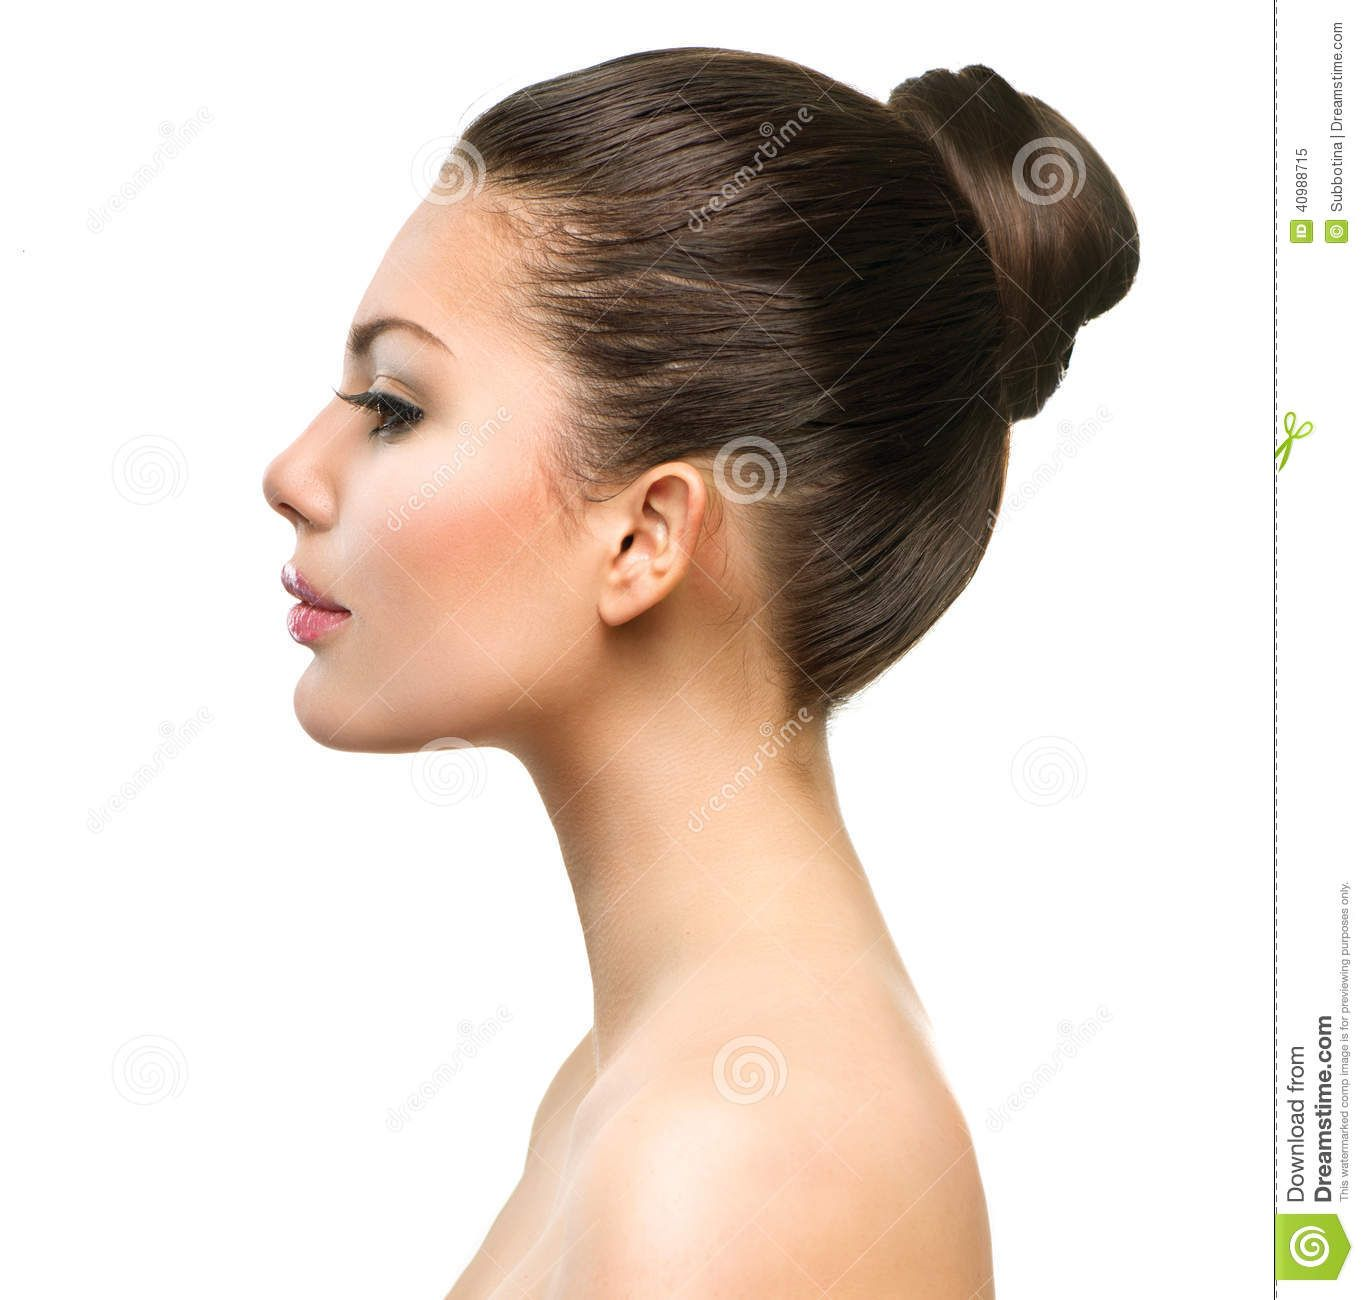 Beautiful Profile Face Of Young Woman Stock - 40988715 Profiles